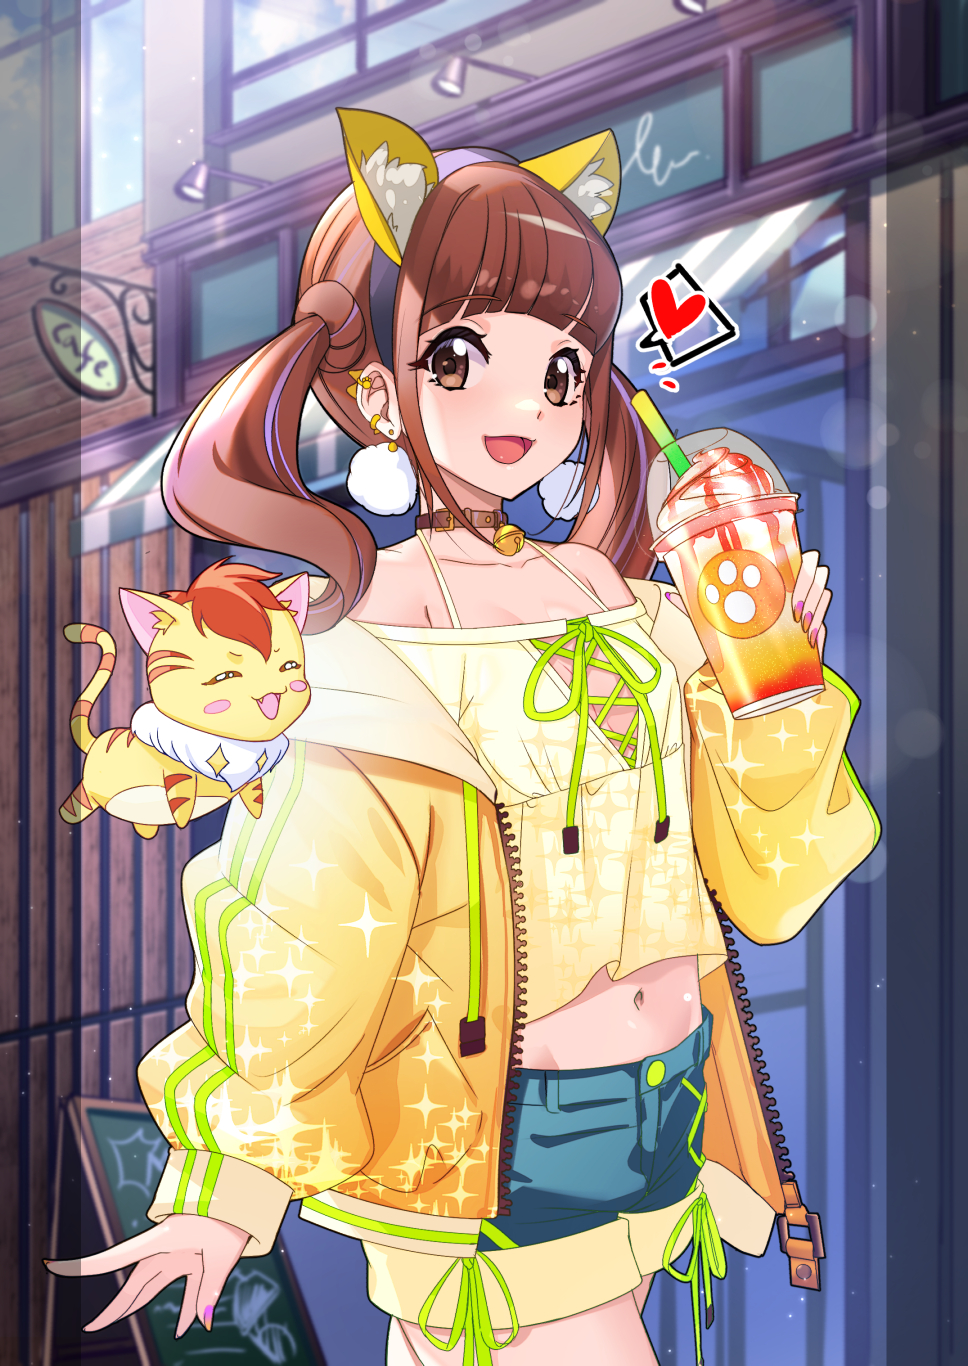 1girl alternate_costume animal_ears blue_shorts brown_collar brown_eyes brown_hair cat_ears collar cup drinking_straw fake_animal_ears healin'_good_precure highres hiramitsu_hinata holding holding_cup jacket looking_at_another midriff navel nyatoran_(precure) open_mouth precure rumo short_hair shorts smile twintails yellow_jacket